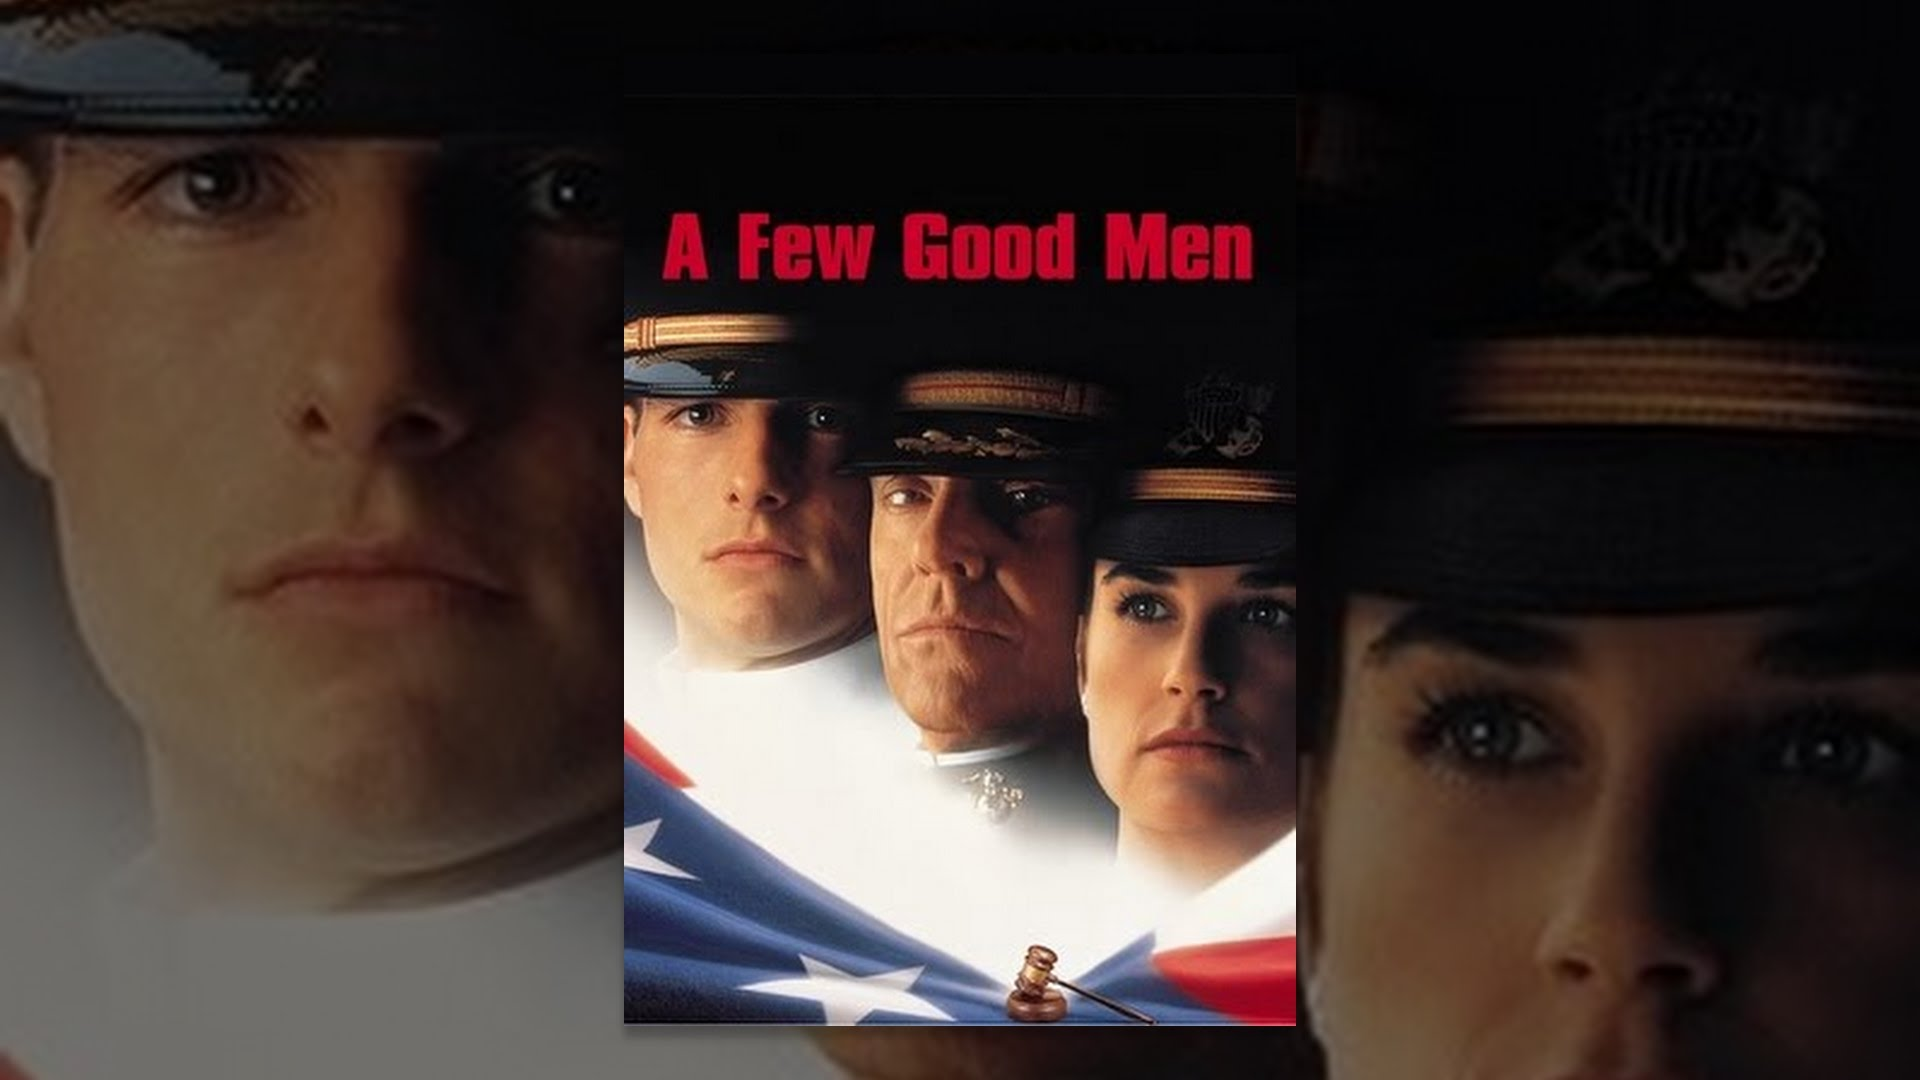 review of a few good men This week, in lieu of the usual hollyweird legal round-up, our hollywood legal correspondent, buttockus finch, asked if he could instead break down the tom cruise classic, a few good men, from a.